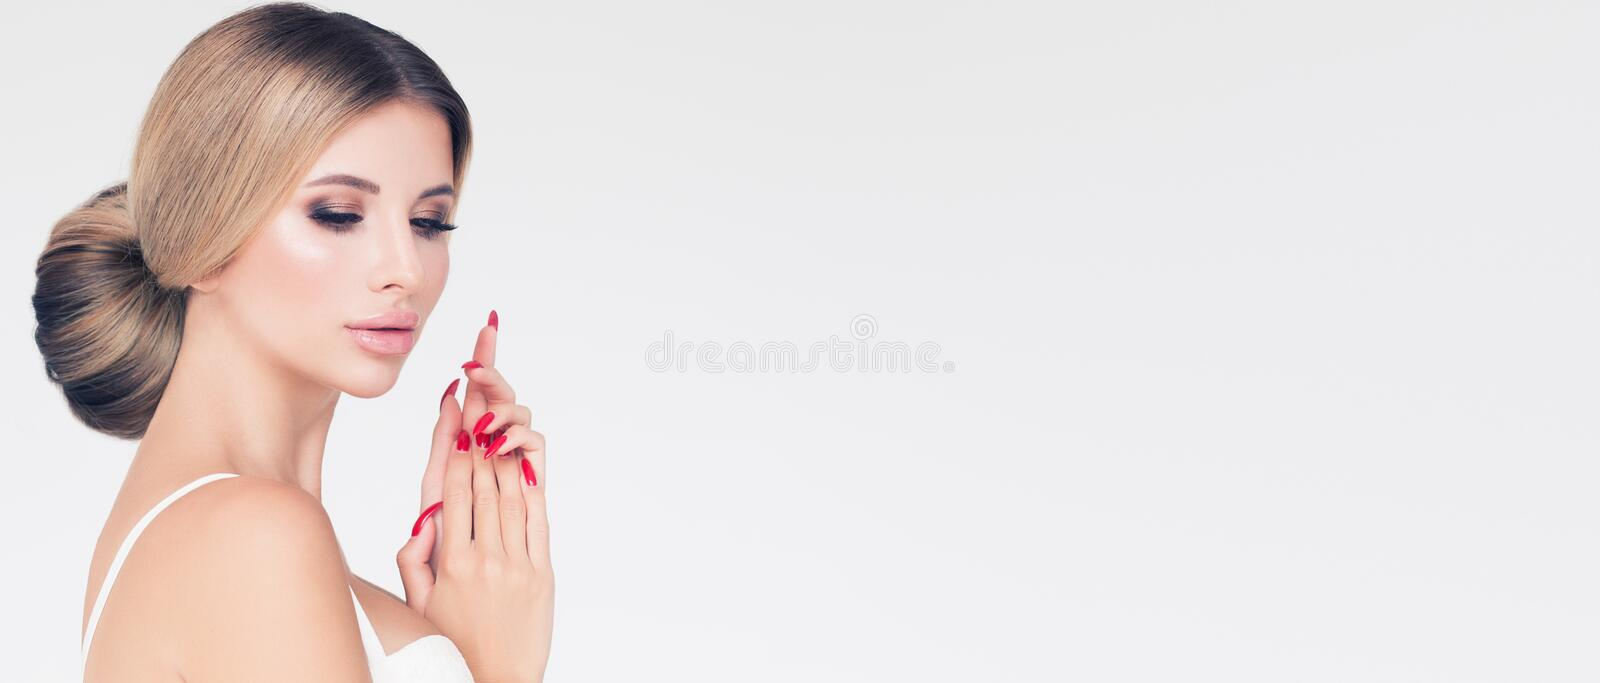 Pretty young model woman with perfect blonde hair, makeup and manicure on white banner background royalty free stock photos